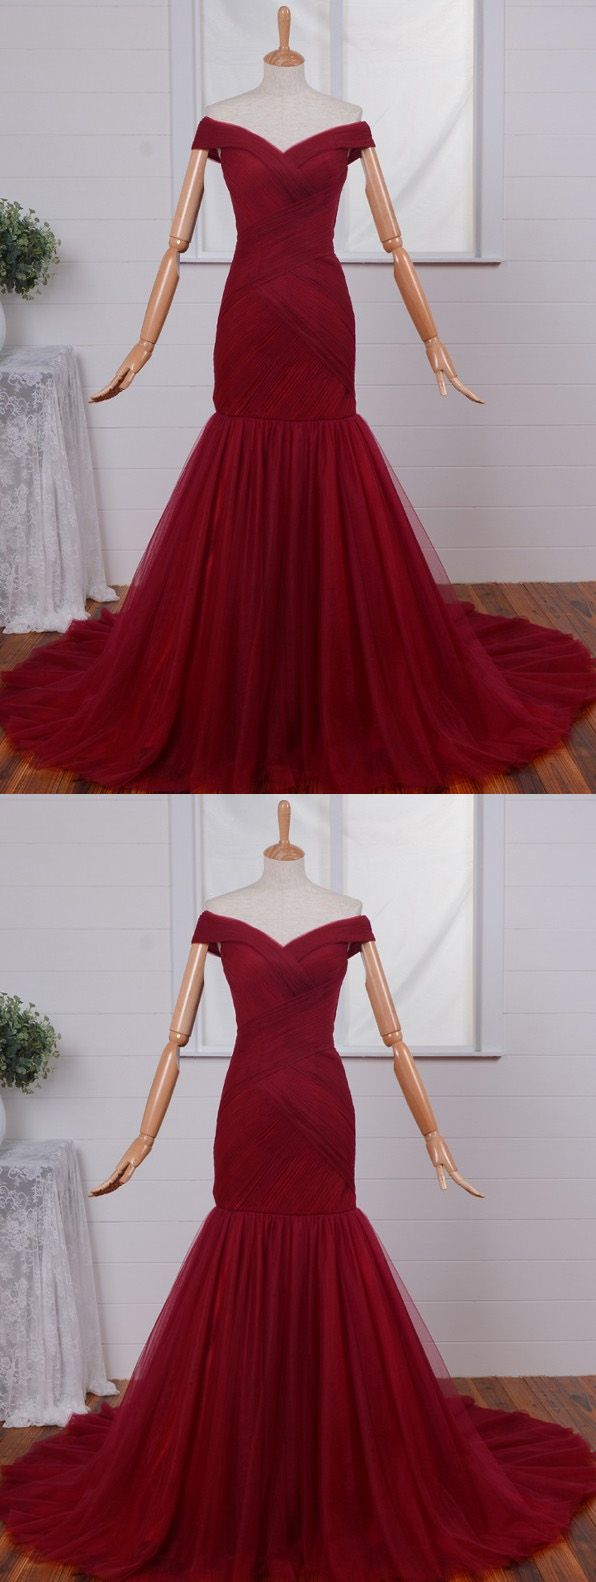 Off shoulder red prom dresses mermaid prom dresses tulle prom